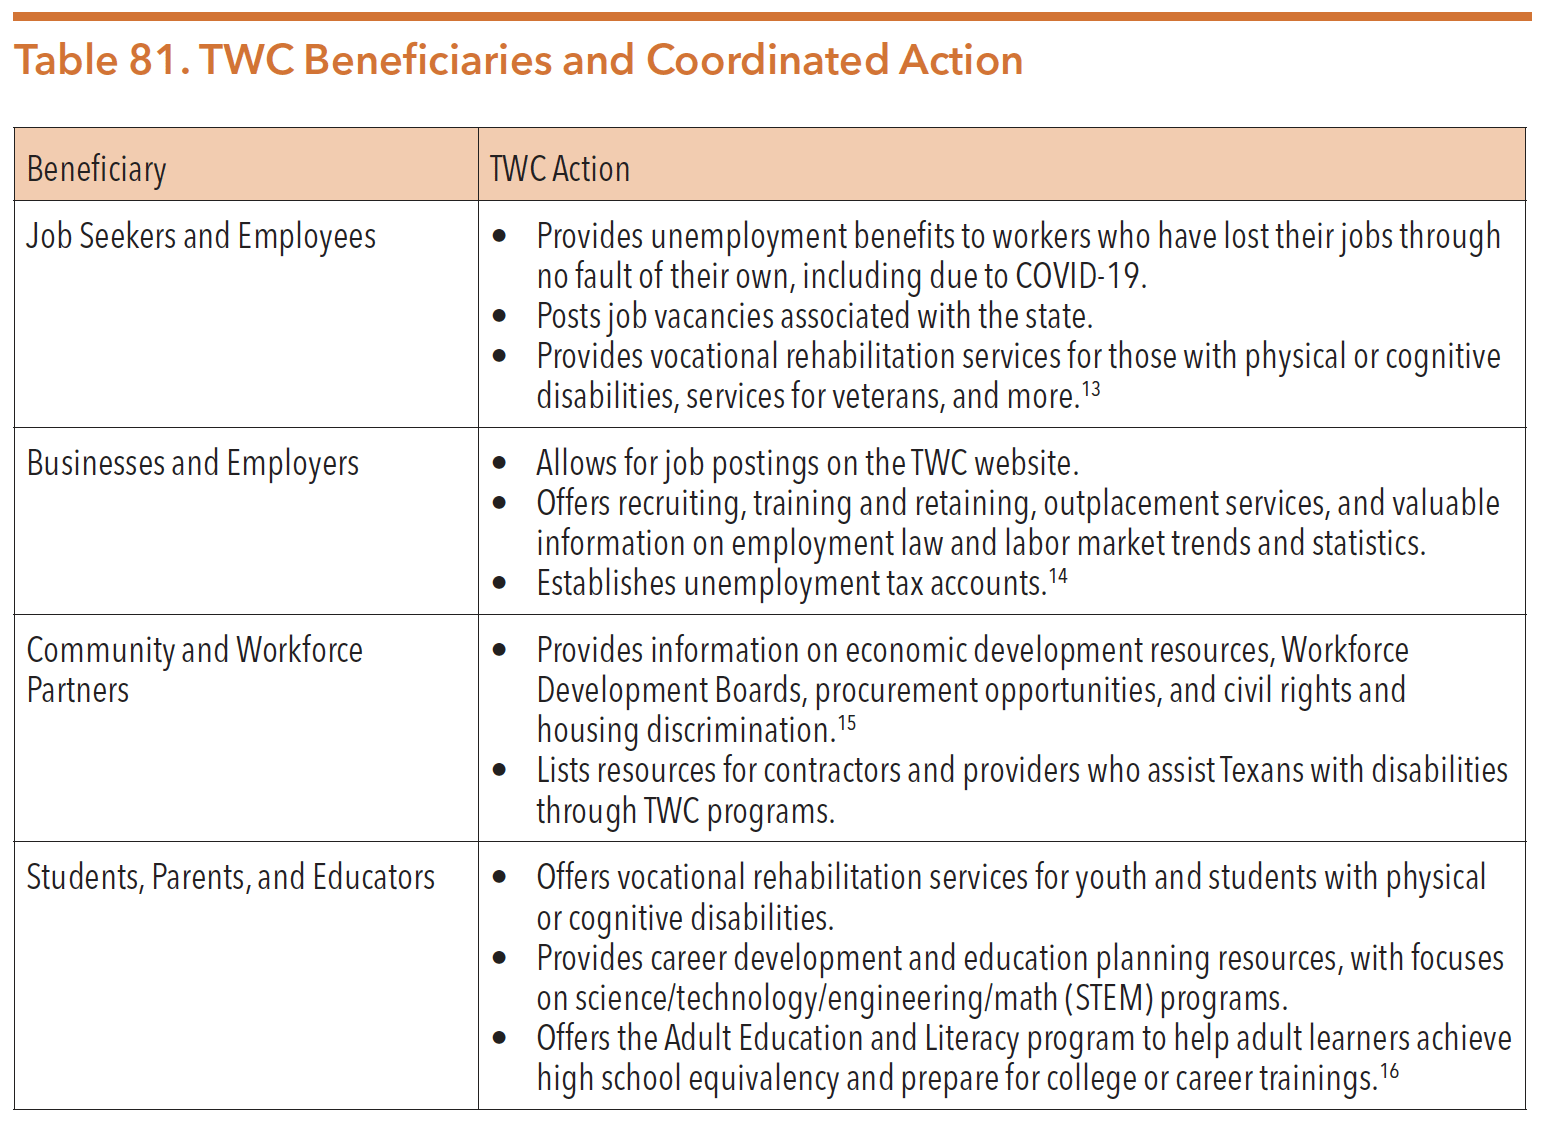 Table 81. TWC Beneficiaries and Coordinated Action